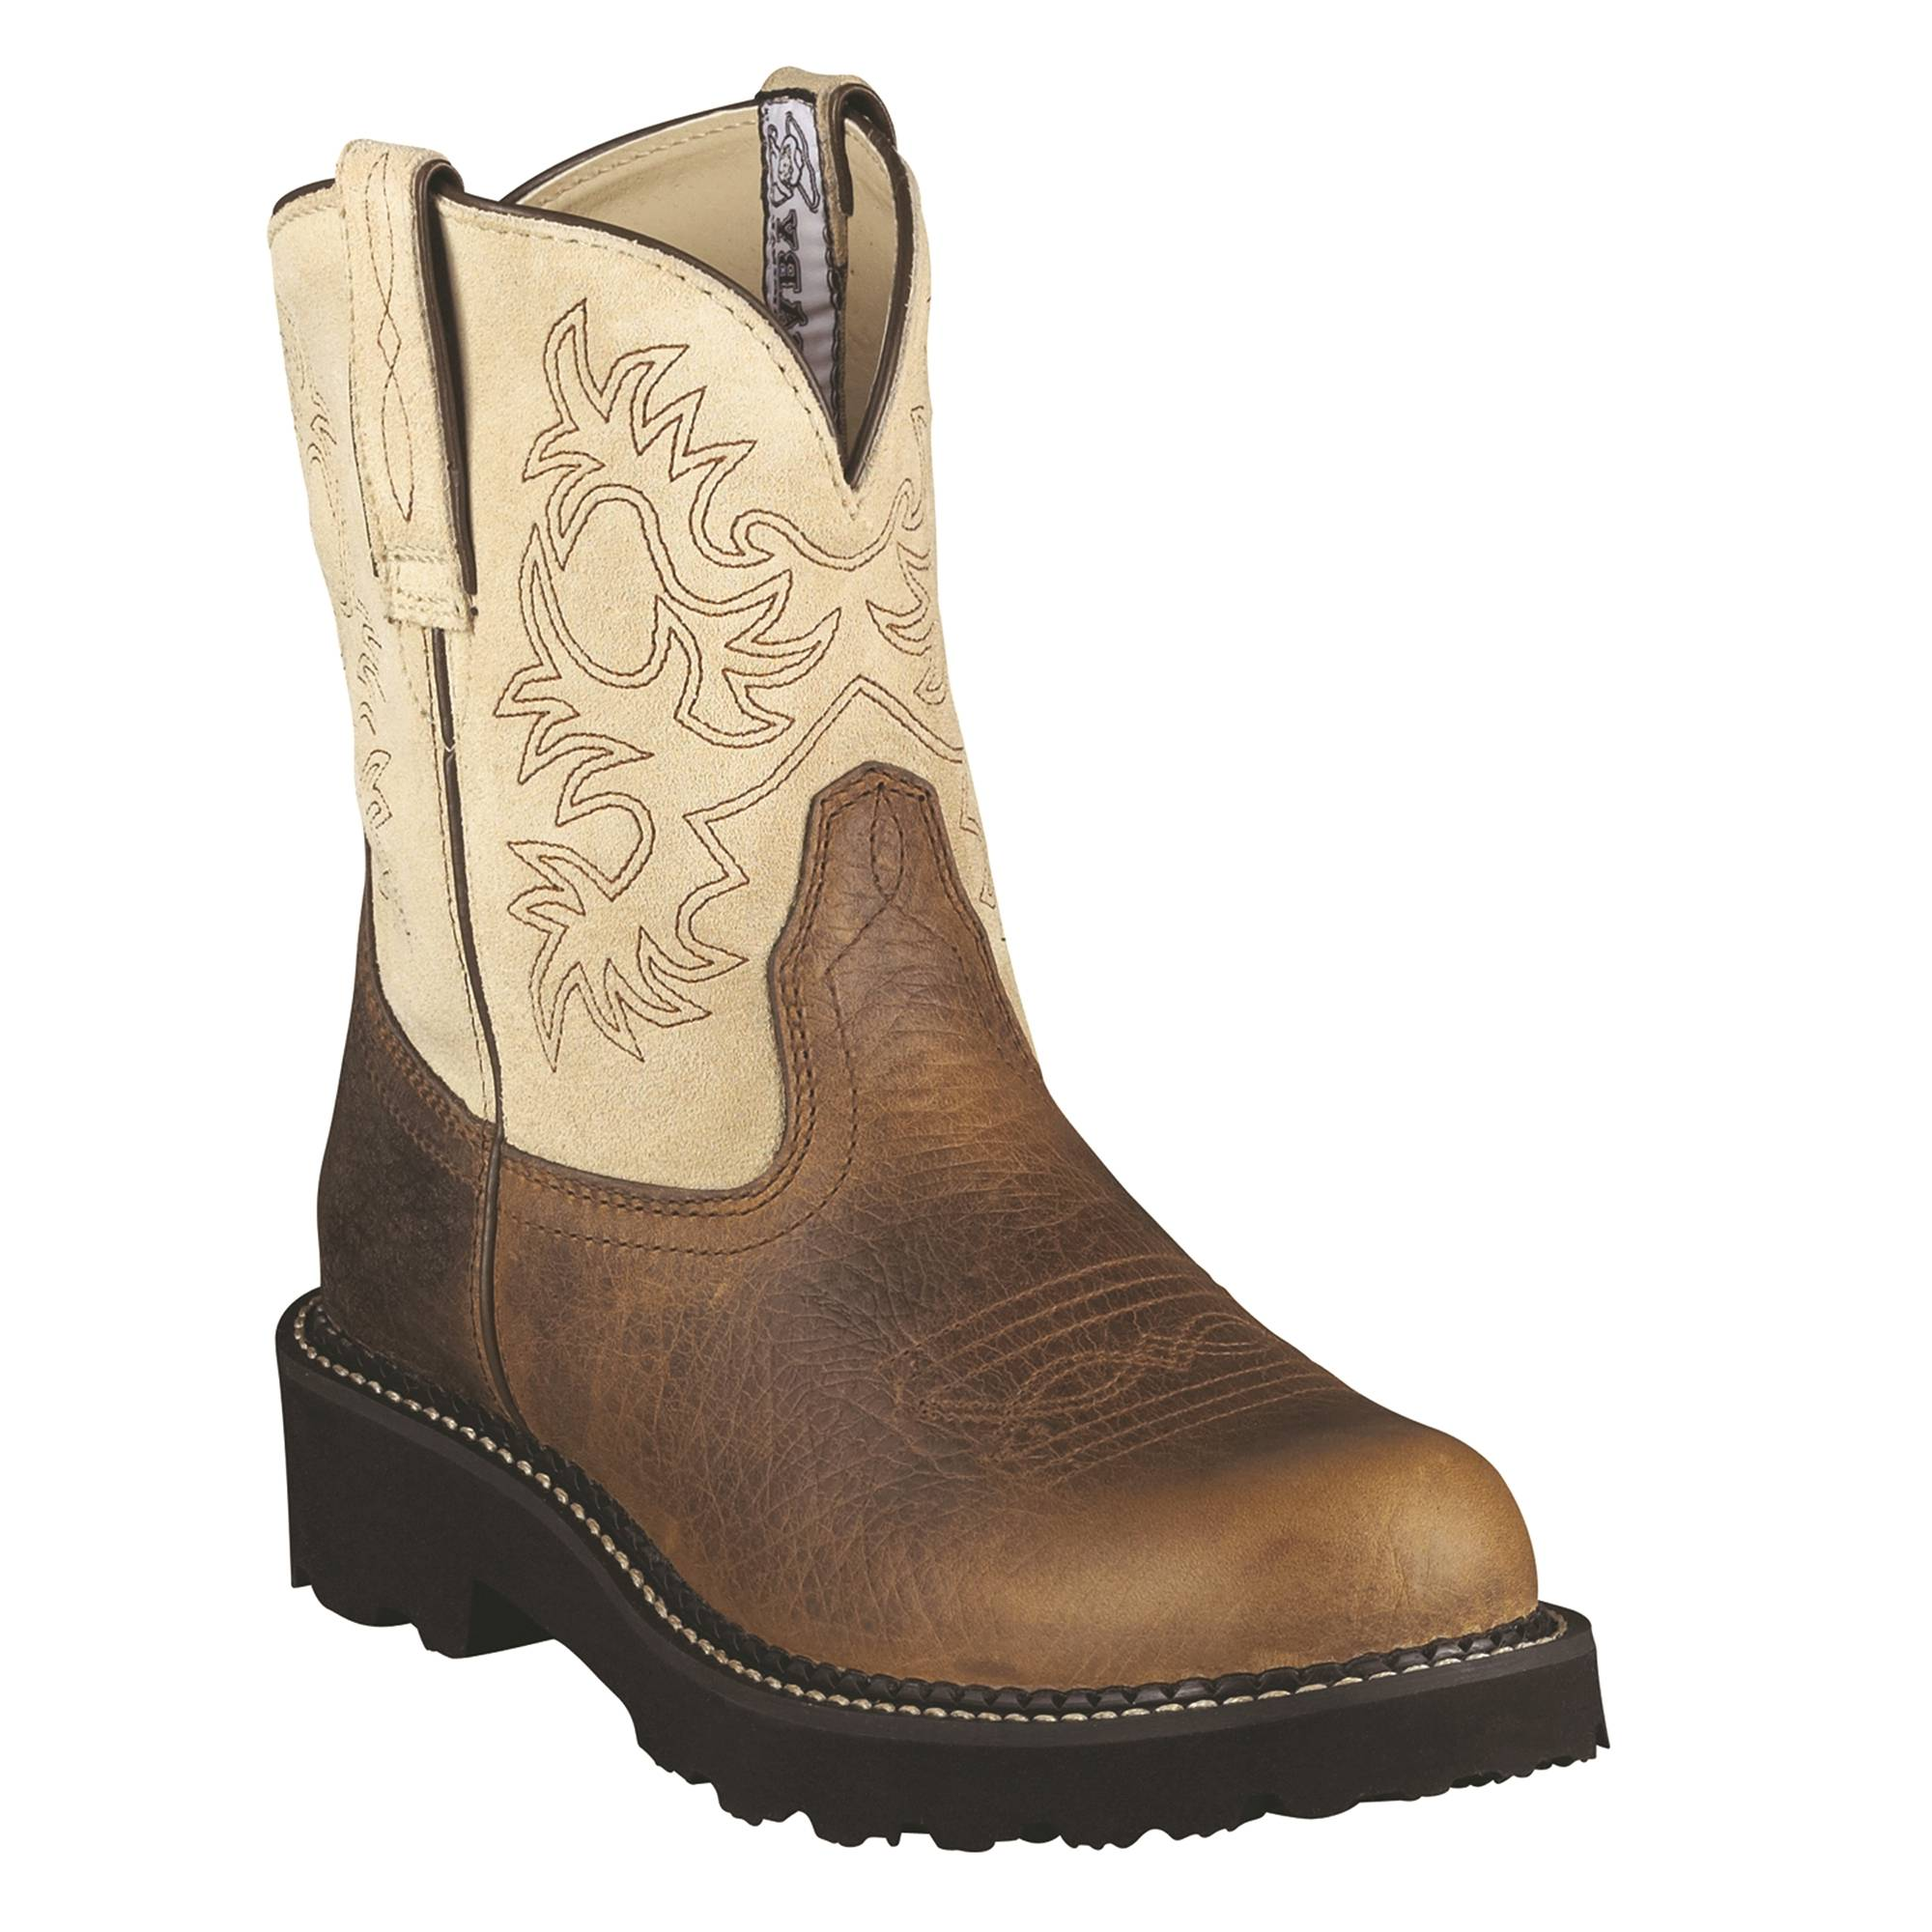 Ariat Fatbaby Original